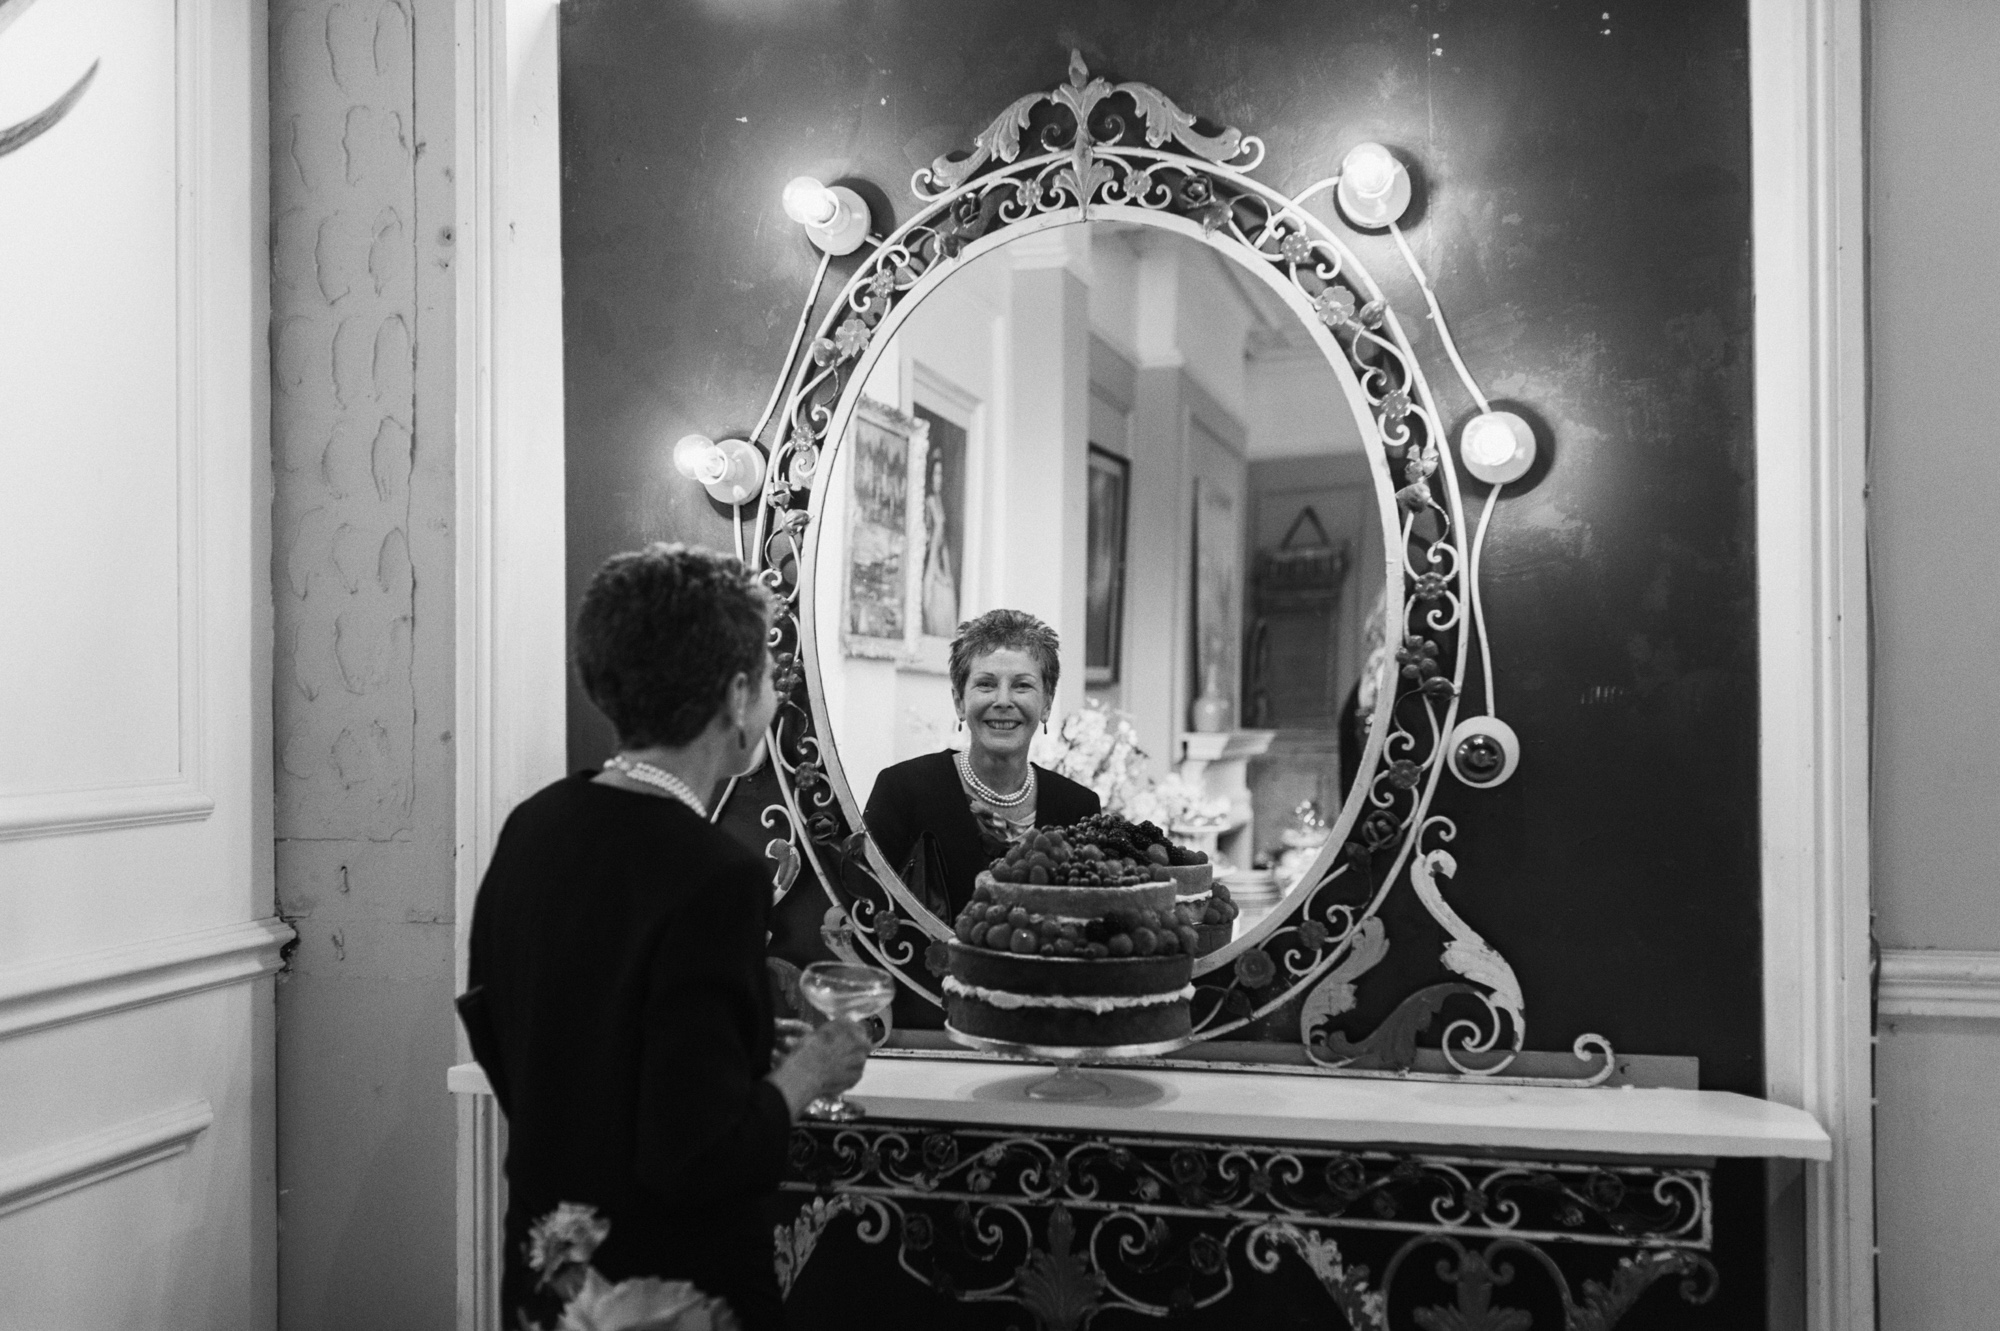 Black and white lady looking in the mirror - gay wedding The Roost Dalston wedding - quirky London wedding photographer © Babb Photo